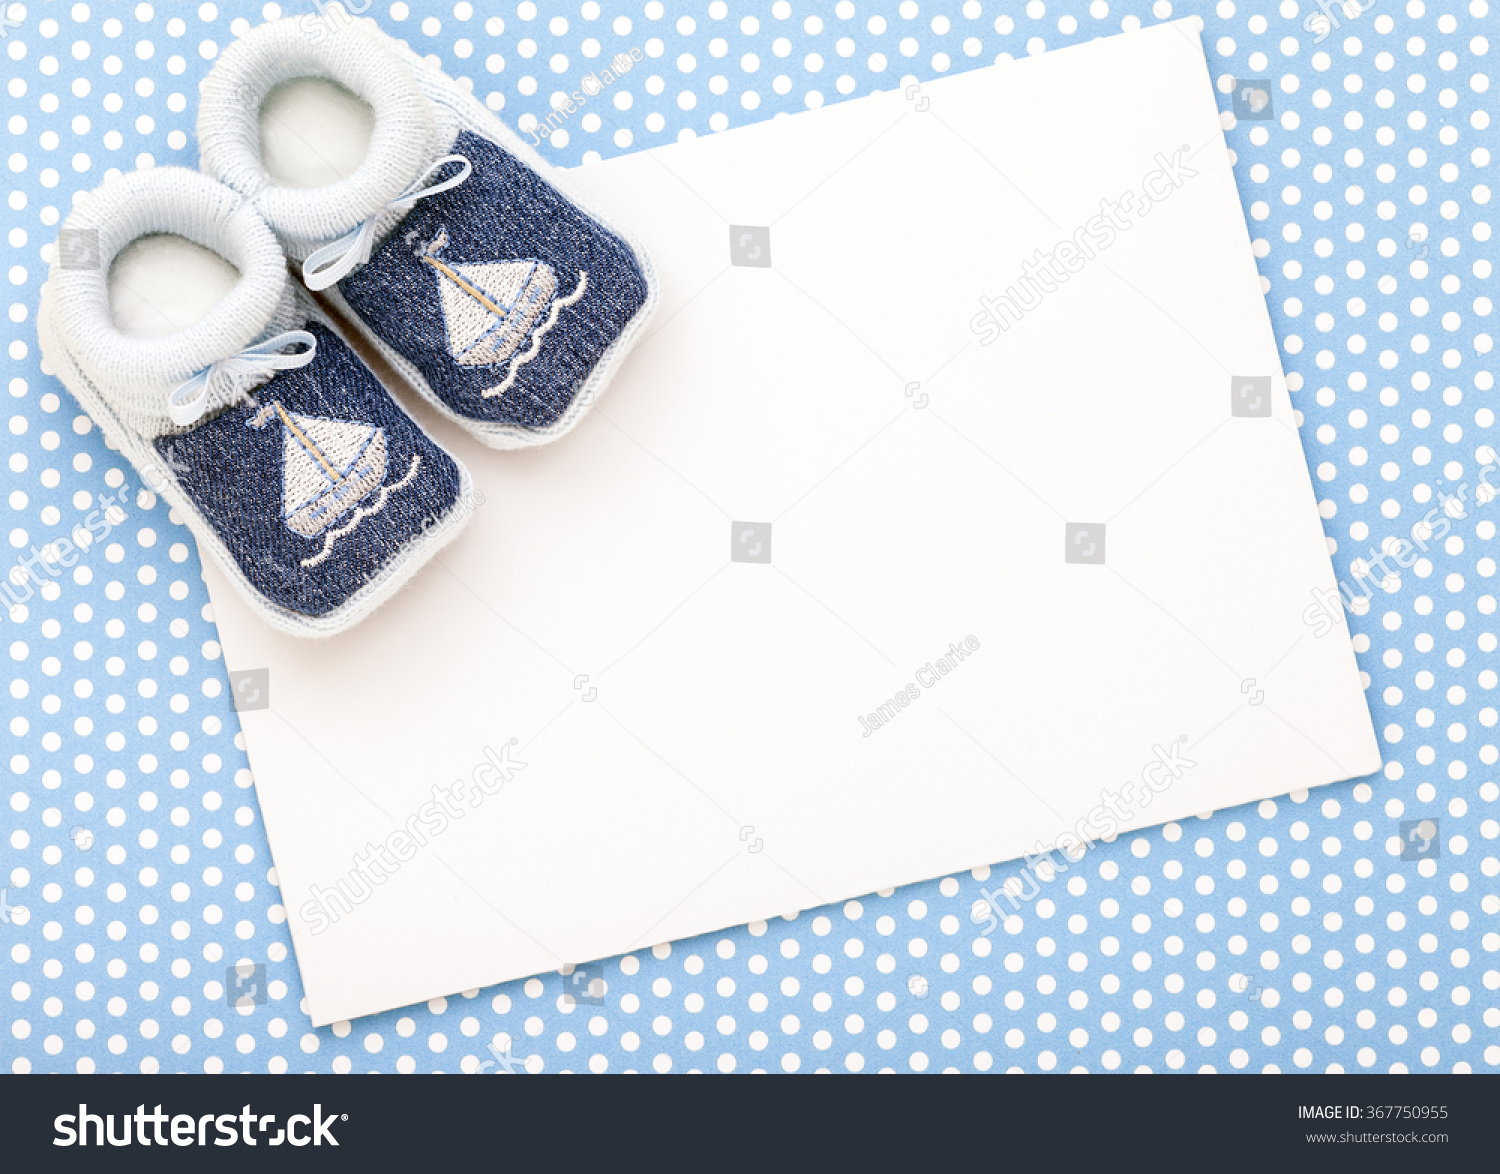 Baby Invitation Card Blue Shoes On Stock Photo Edit Now 367750955